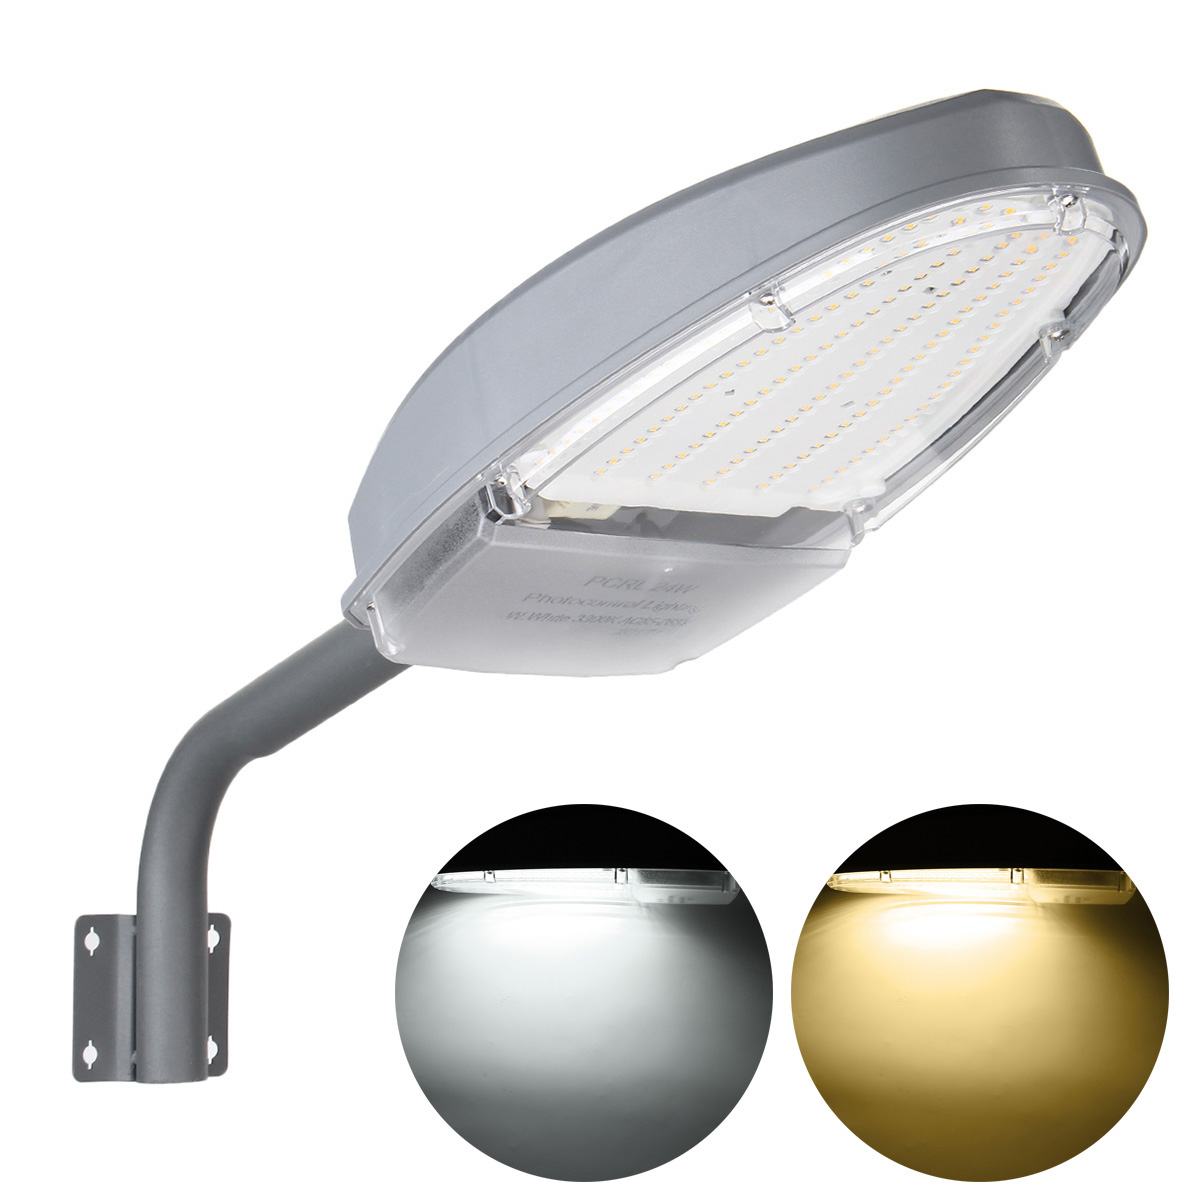 Non dimmable Light Sensor 24W 144 LED Street Flood Road Path Lamp Outdoor Garden Yard Path Waterproof AC85-265V 150 led warm white solar flood light yard street path security lamp sensor motion activated outdoor garden lamp 1050lm